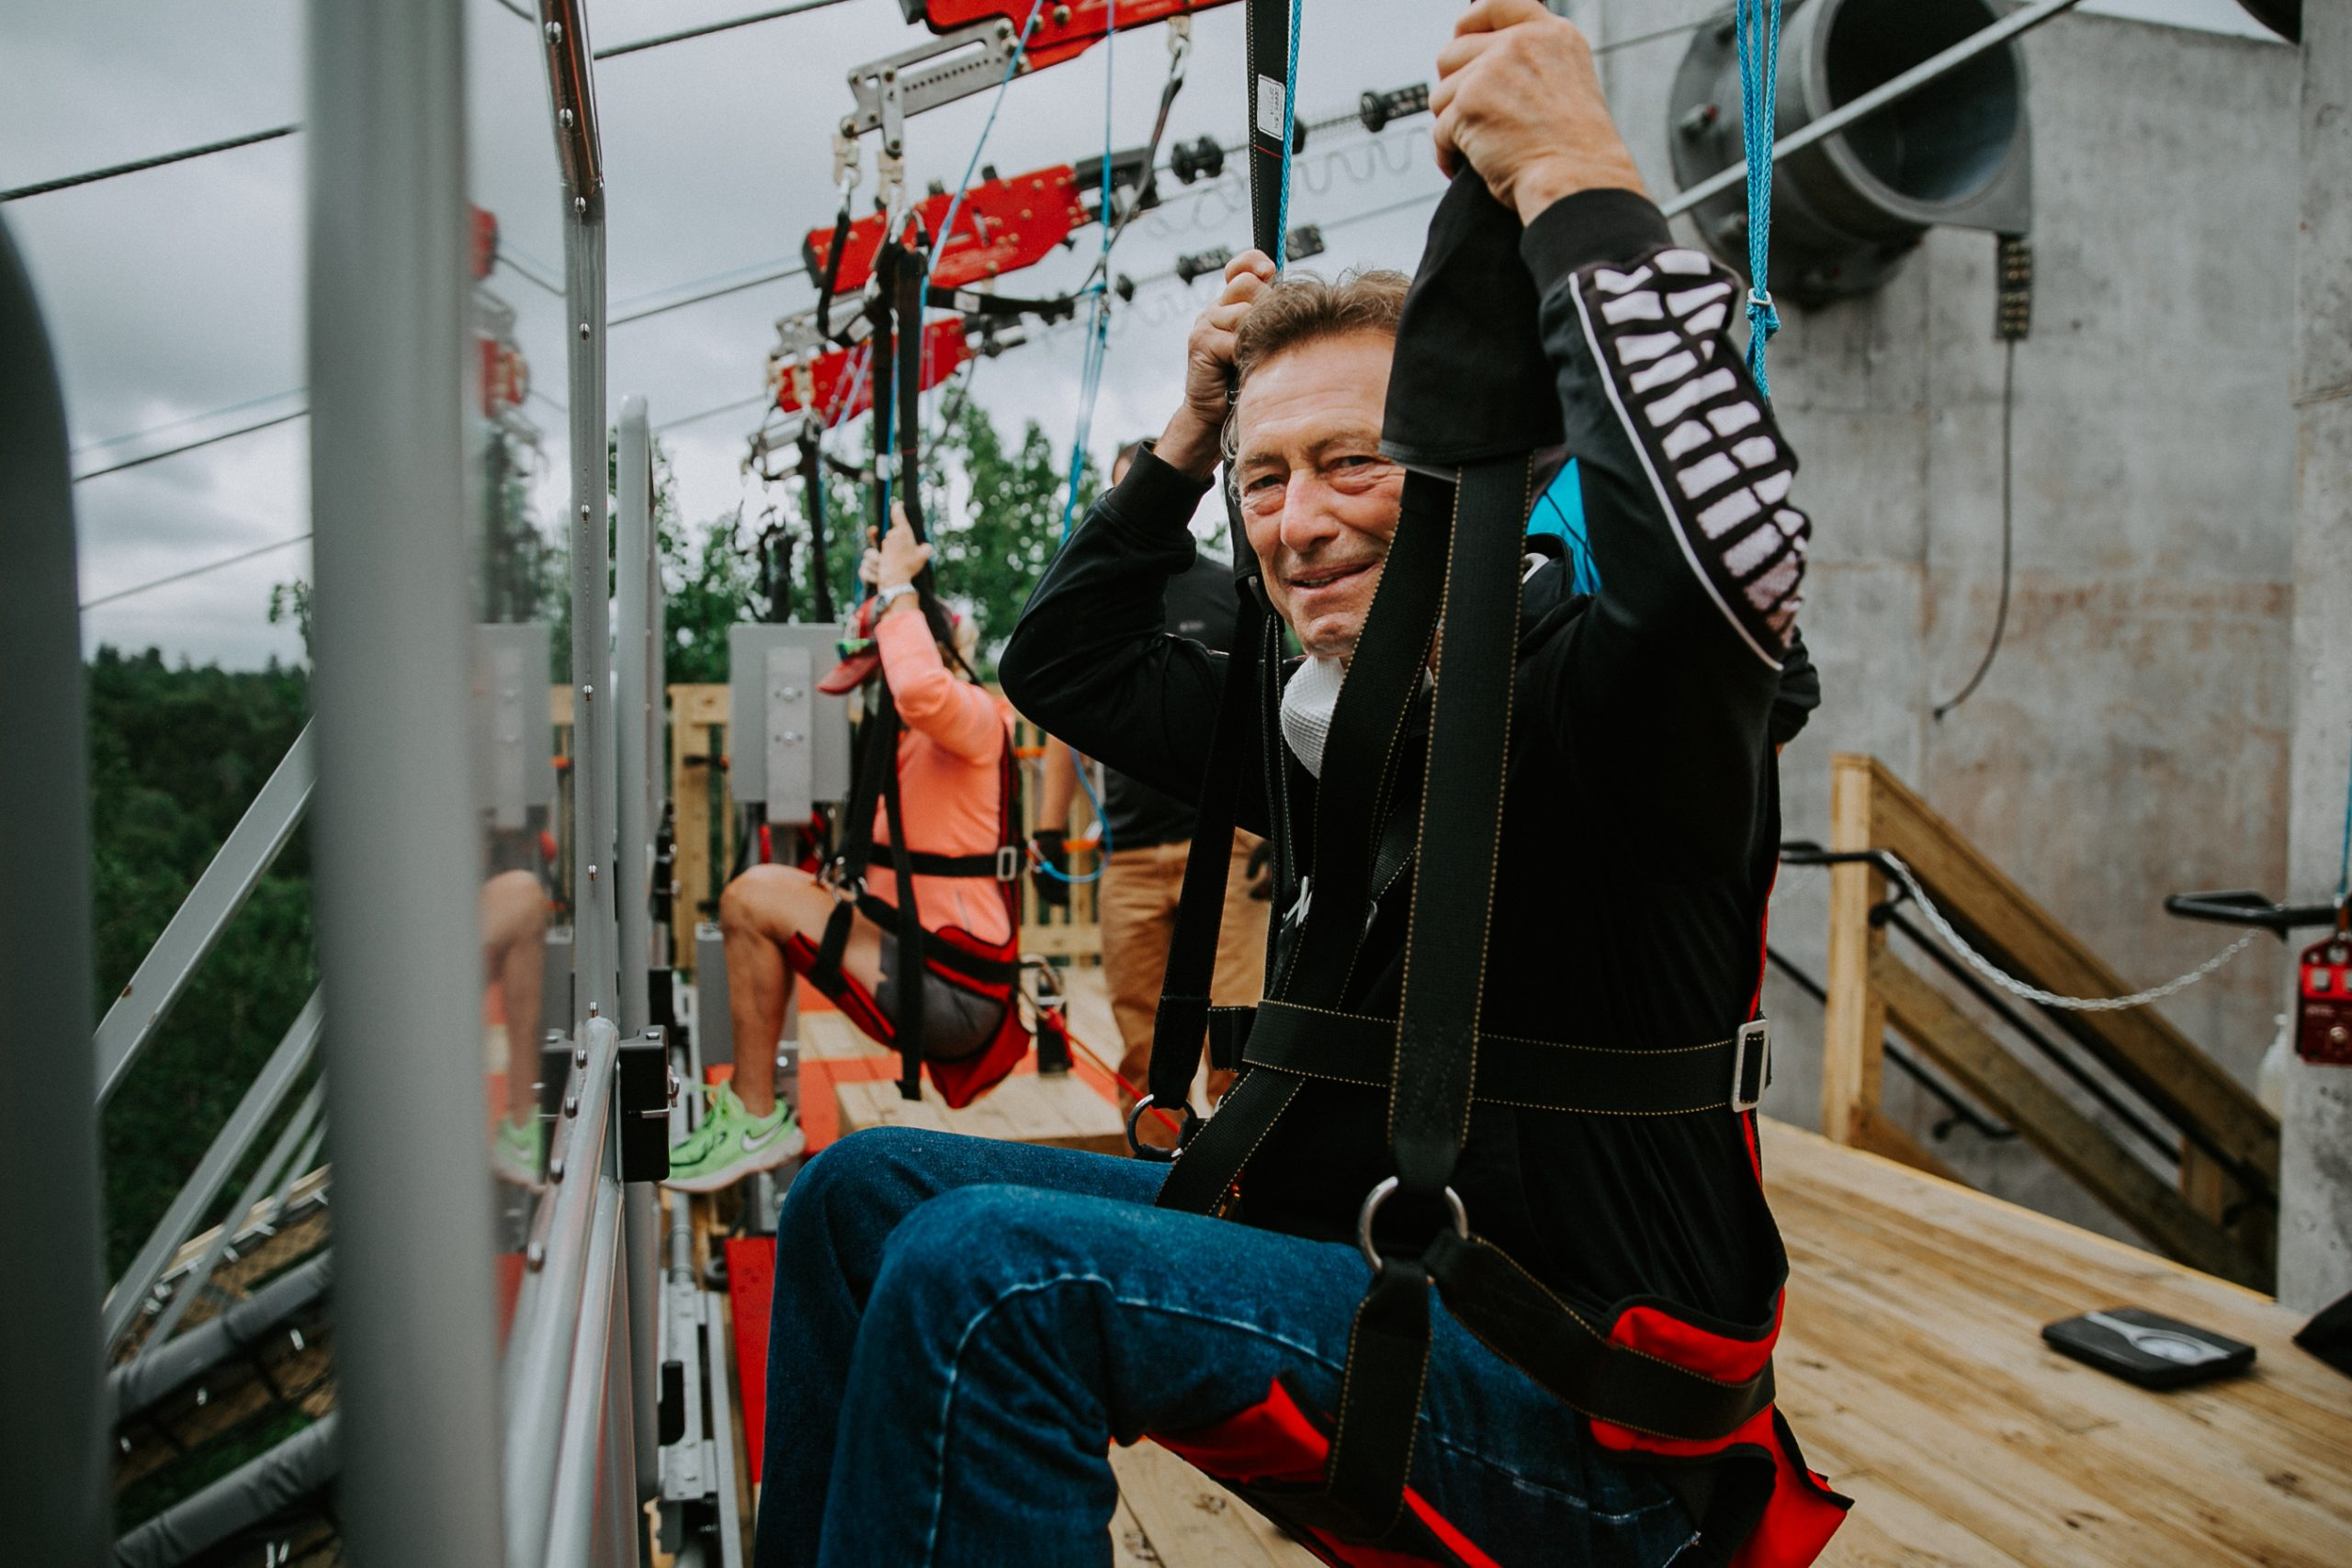 Jay Rand tests out the newest addition to the Olympic Jumping Complex, the Sky Flyer Zipline